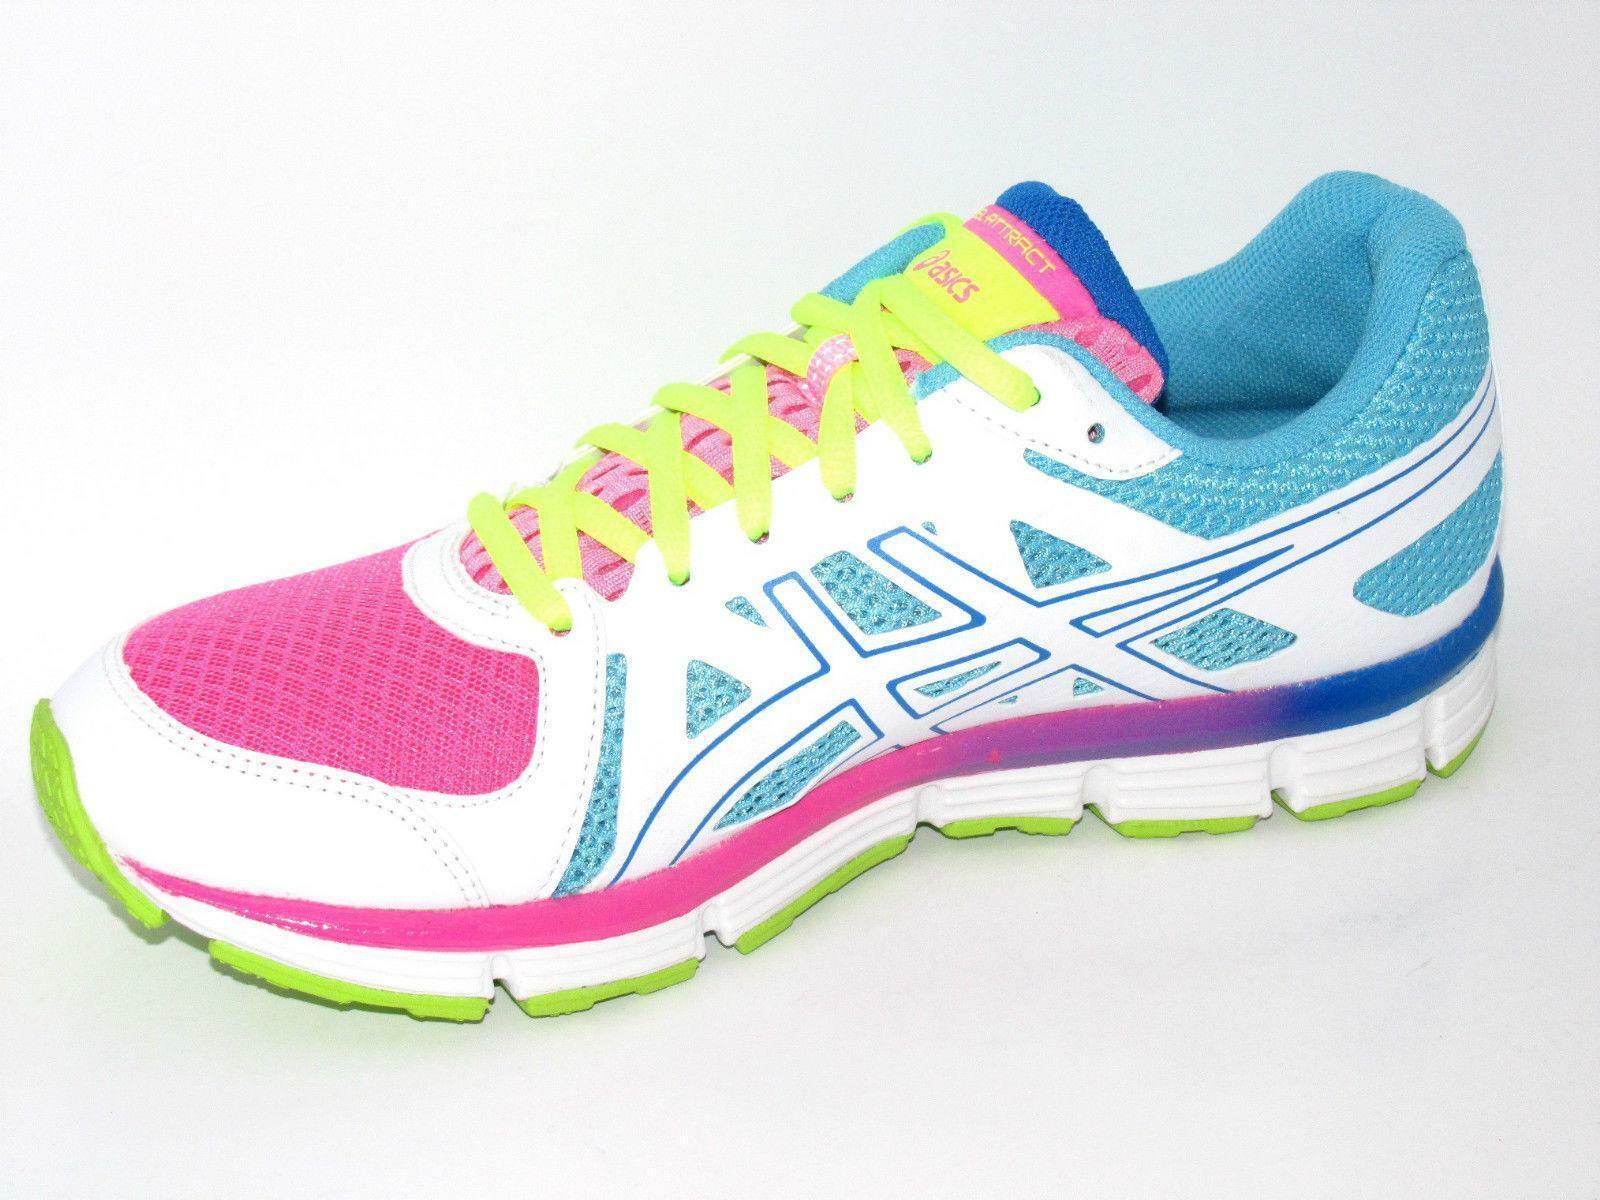 the best attitude 5a191 e0cf3 ... Mujer Mujer Mujer ASICS Running Zapatillas Casual salvaje gel-attract  t28rq 2018 064080 ...